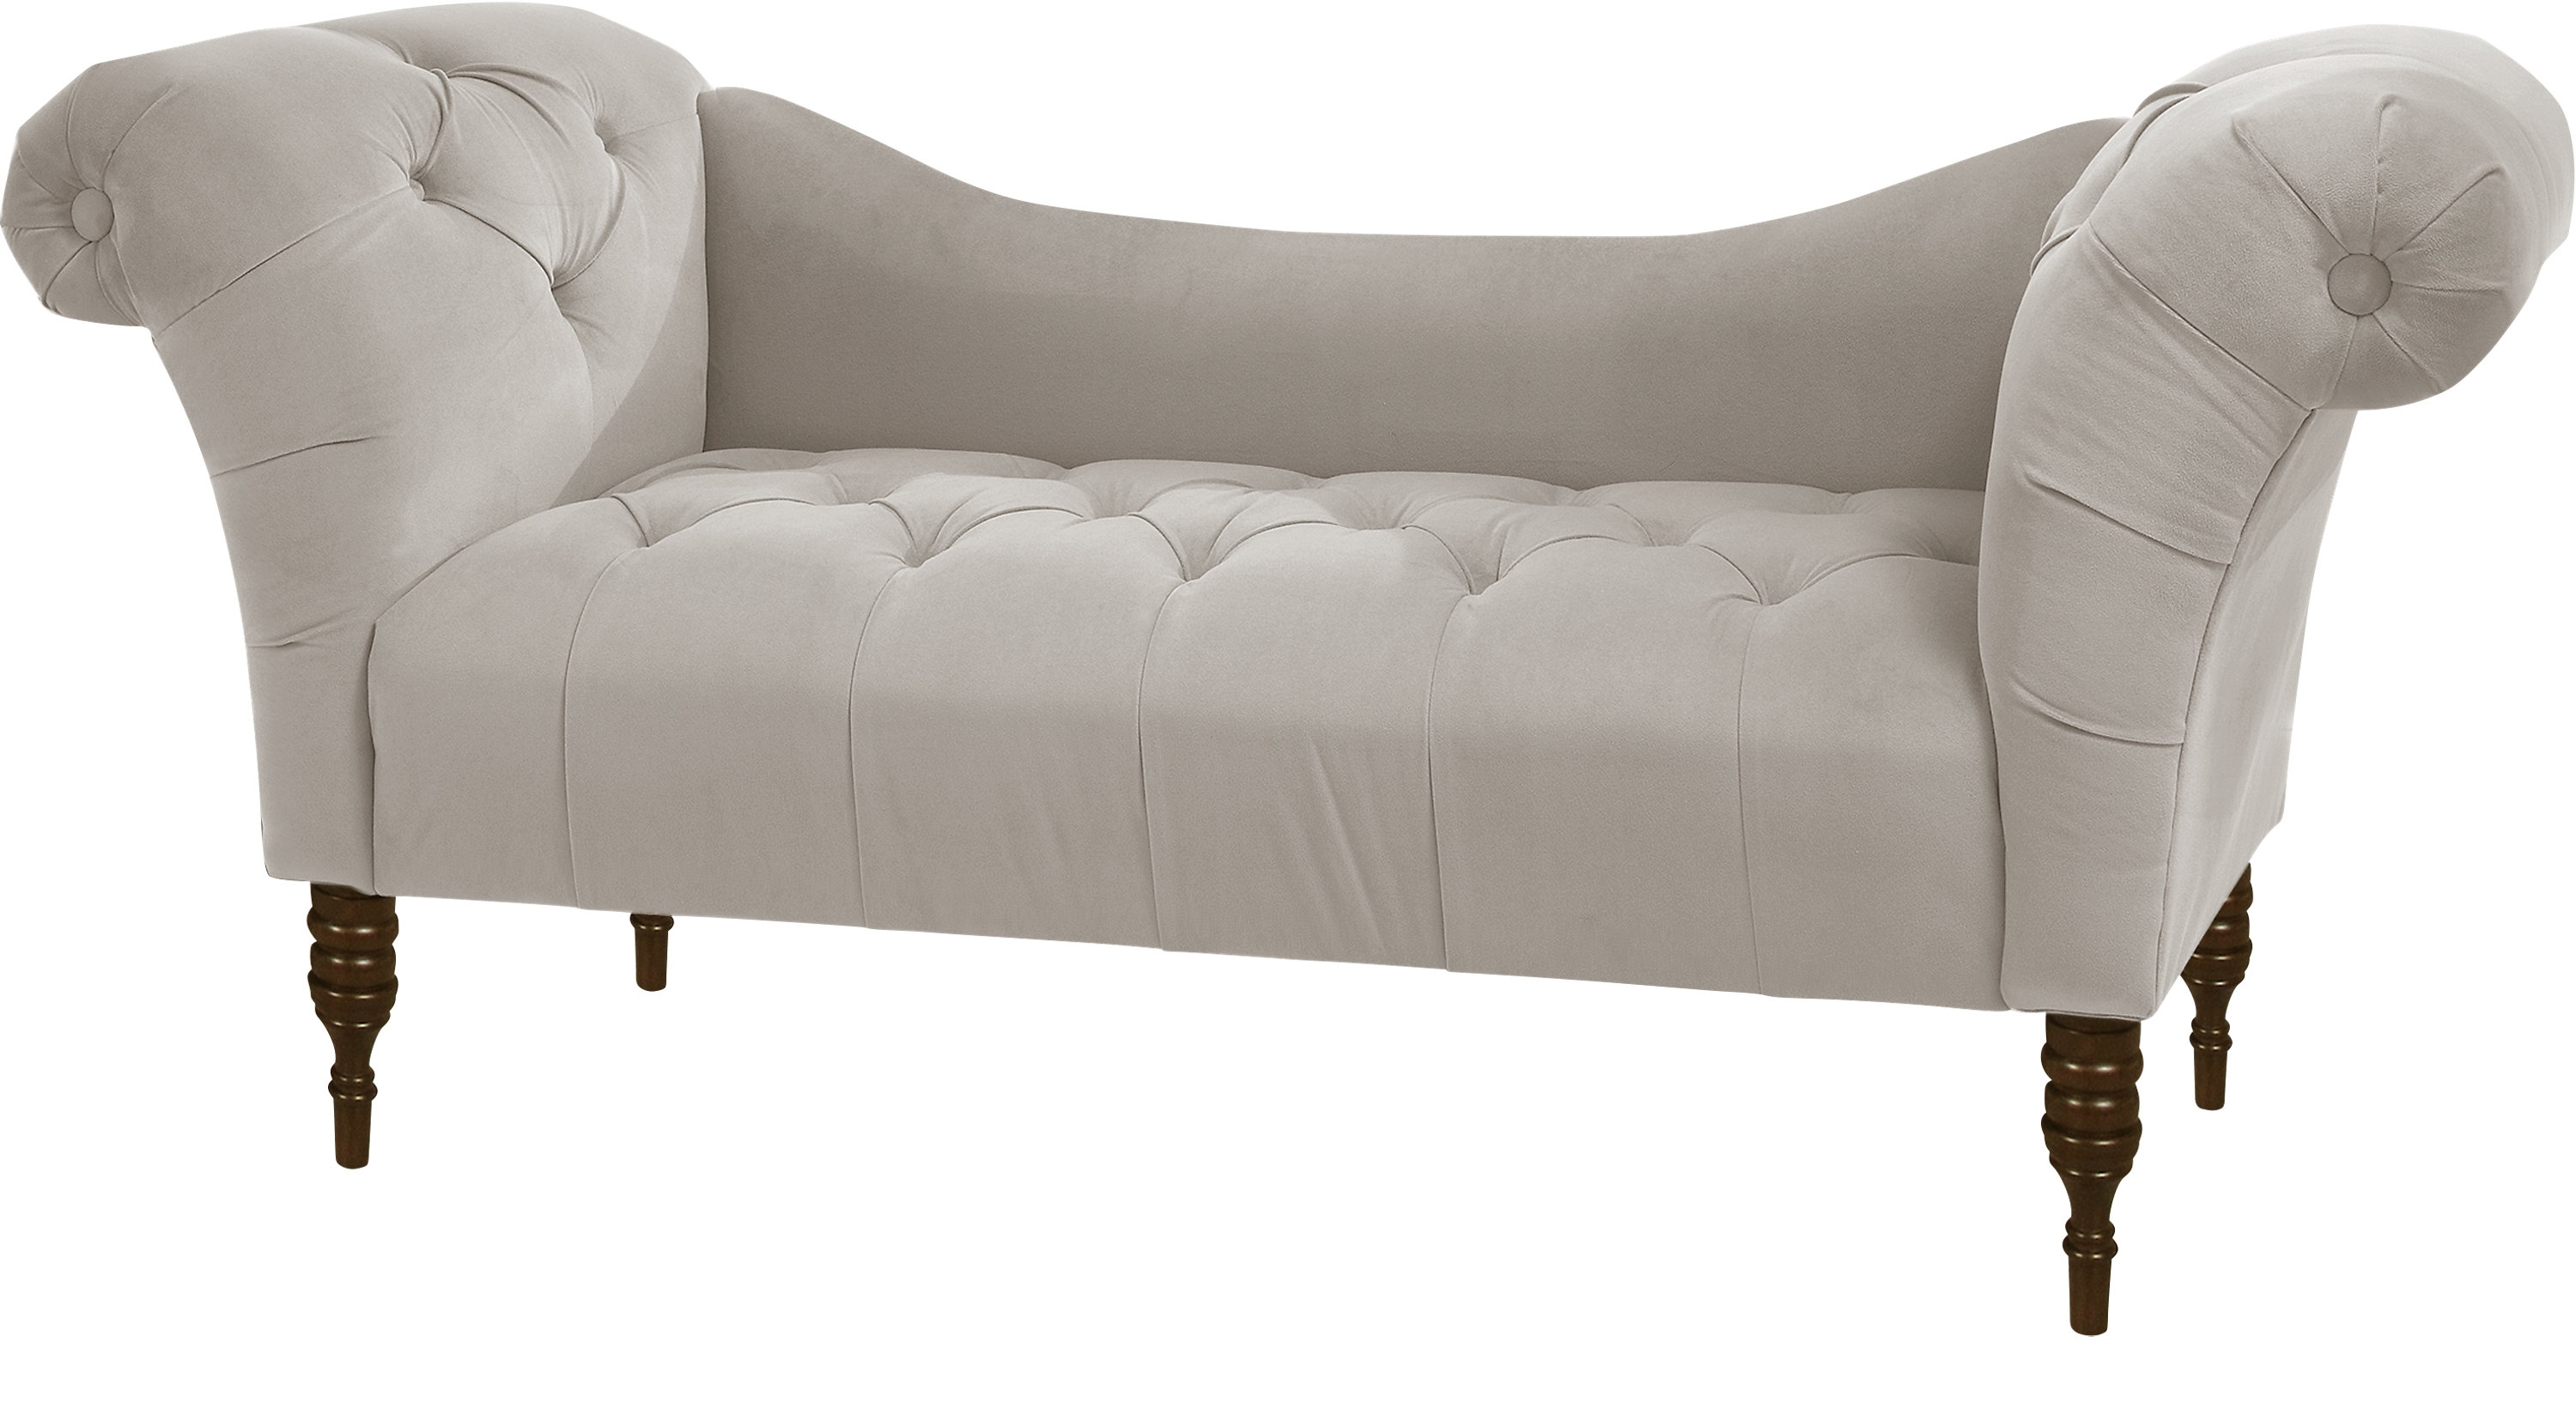 Grey Chaises In Most Recently Released Grey Chaises – Grey Chaise Lounge Sofas (View 11 of 15)